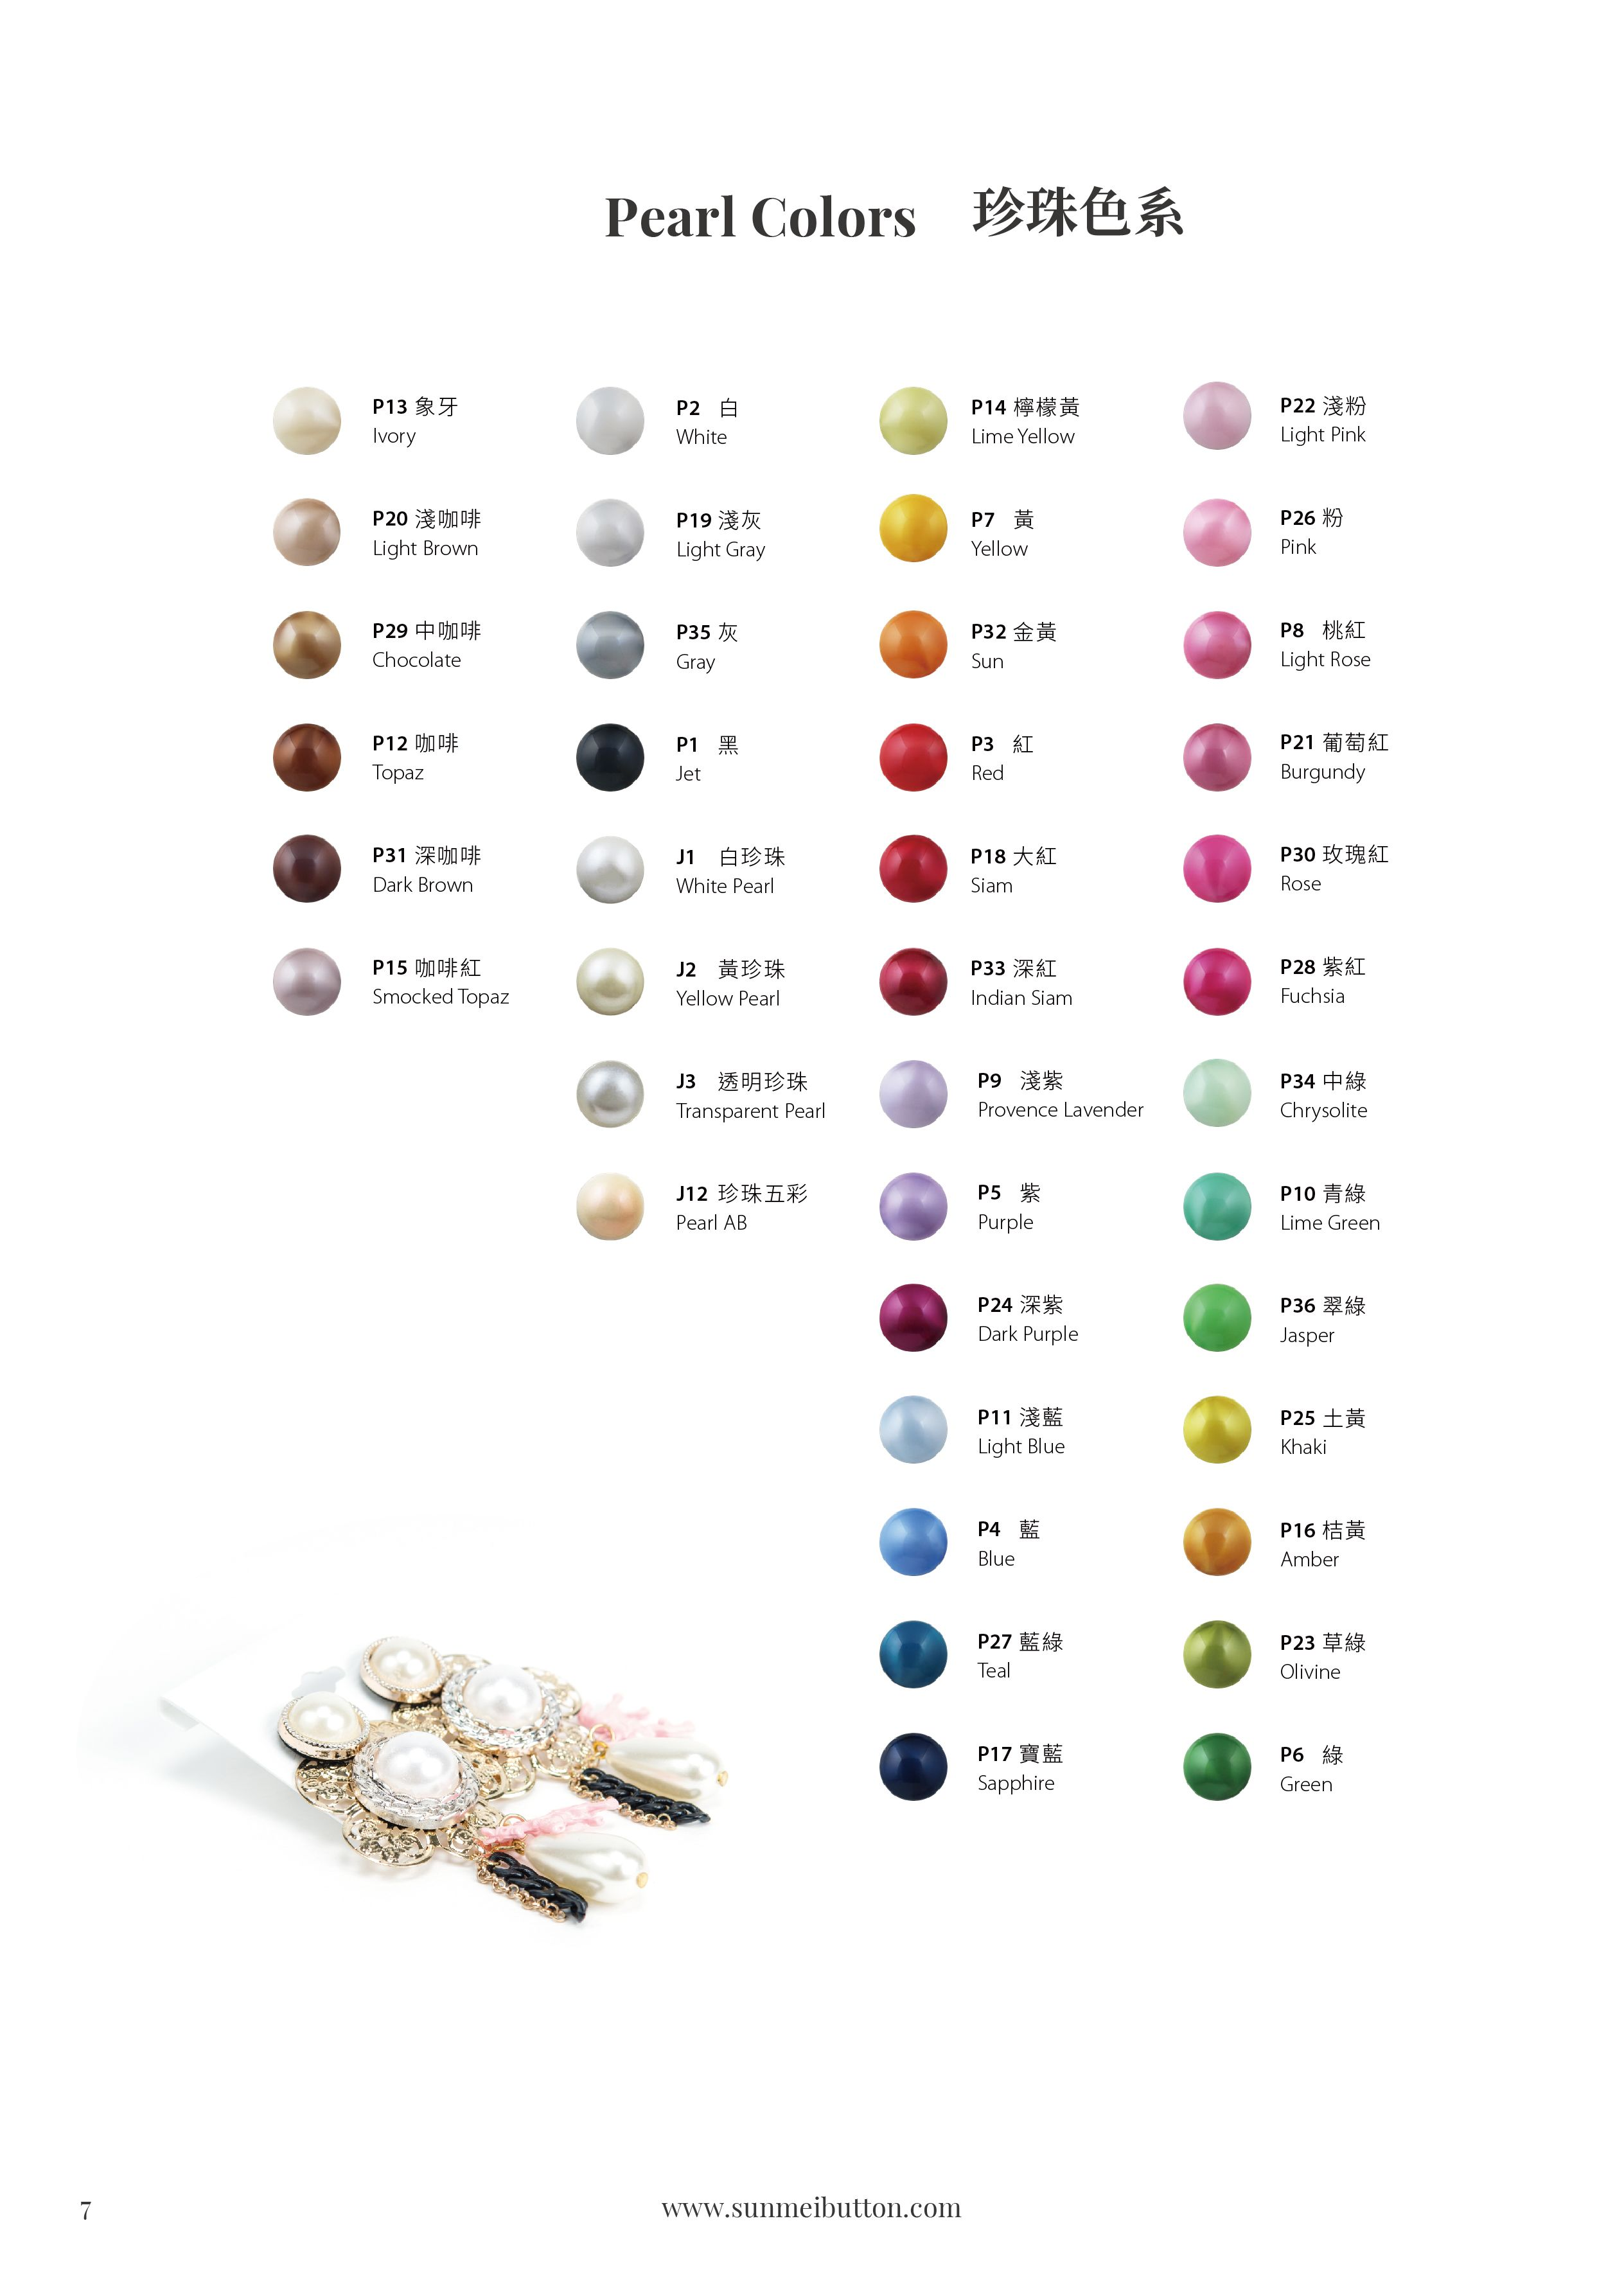 Pearl Beads Color Charts In 2020 Rhinestone Material Pearl Color Rhinestone